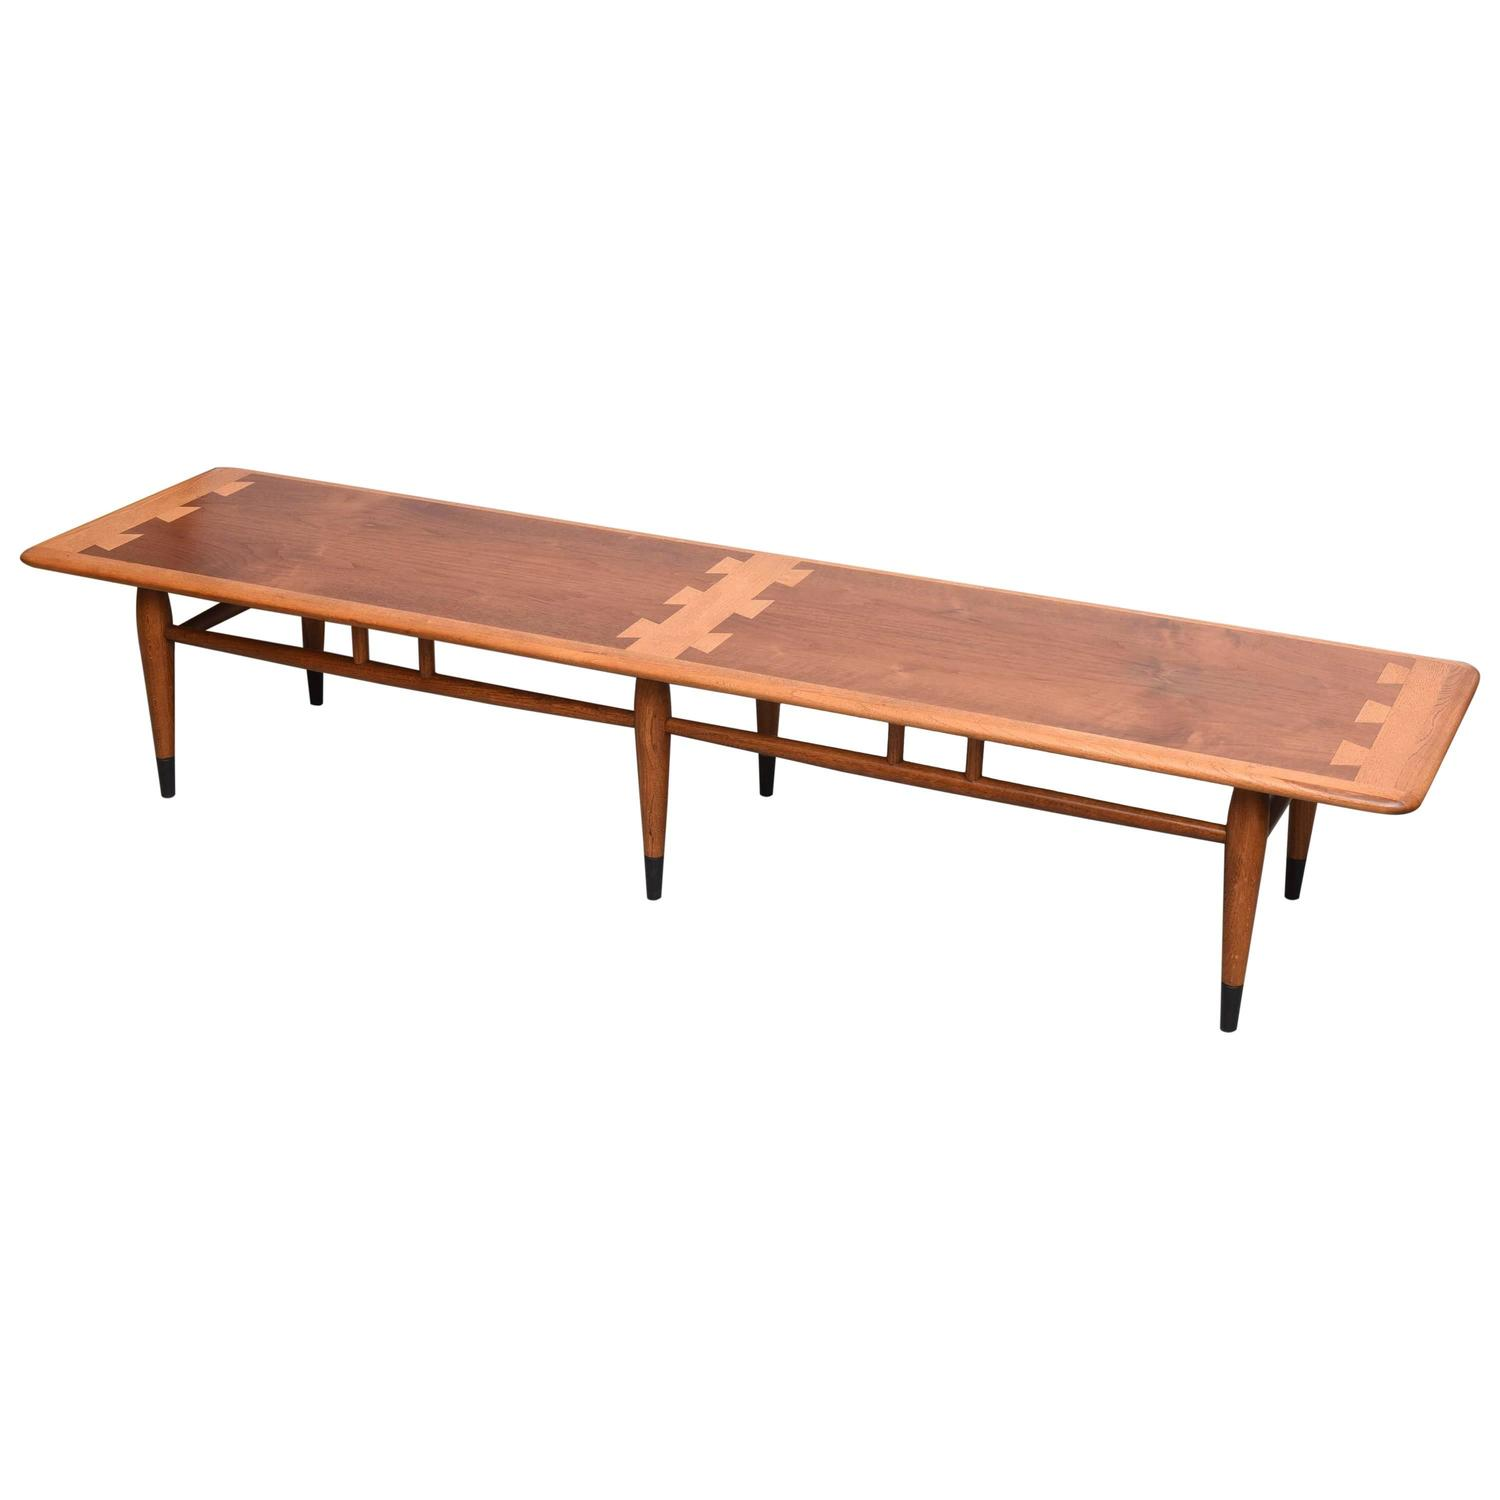 "Lane ""Dovetail"" Inlaid Coffee Table For Sale at 1stdibs"